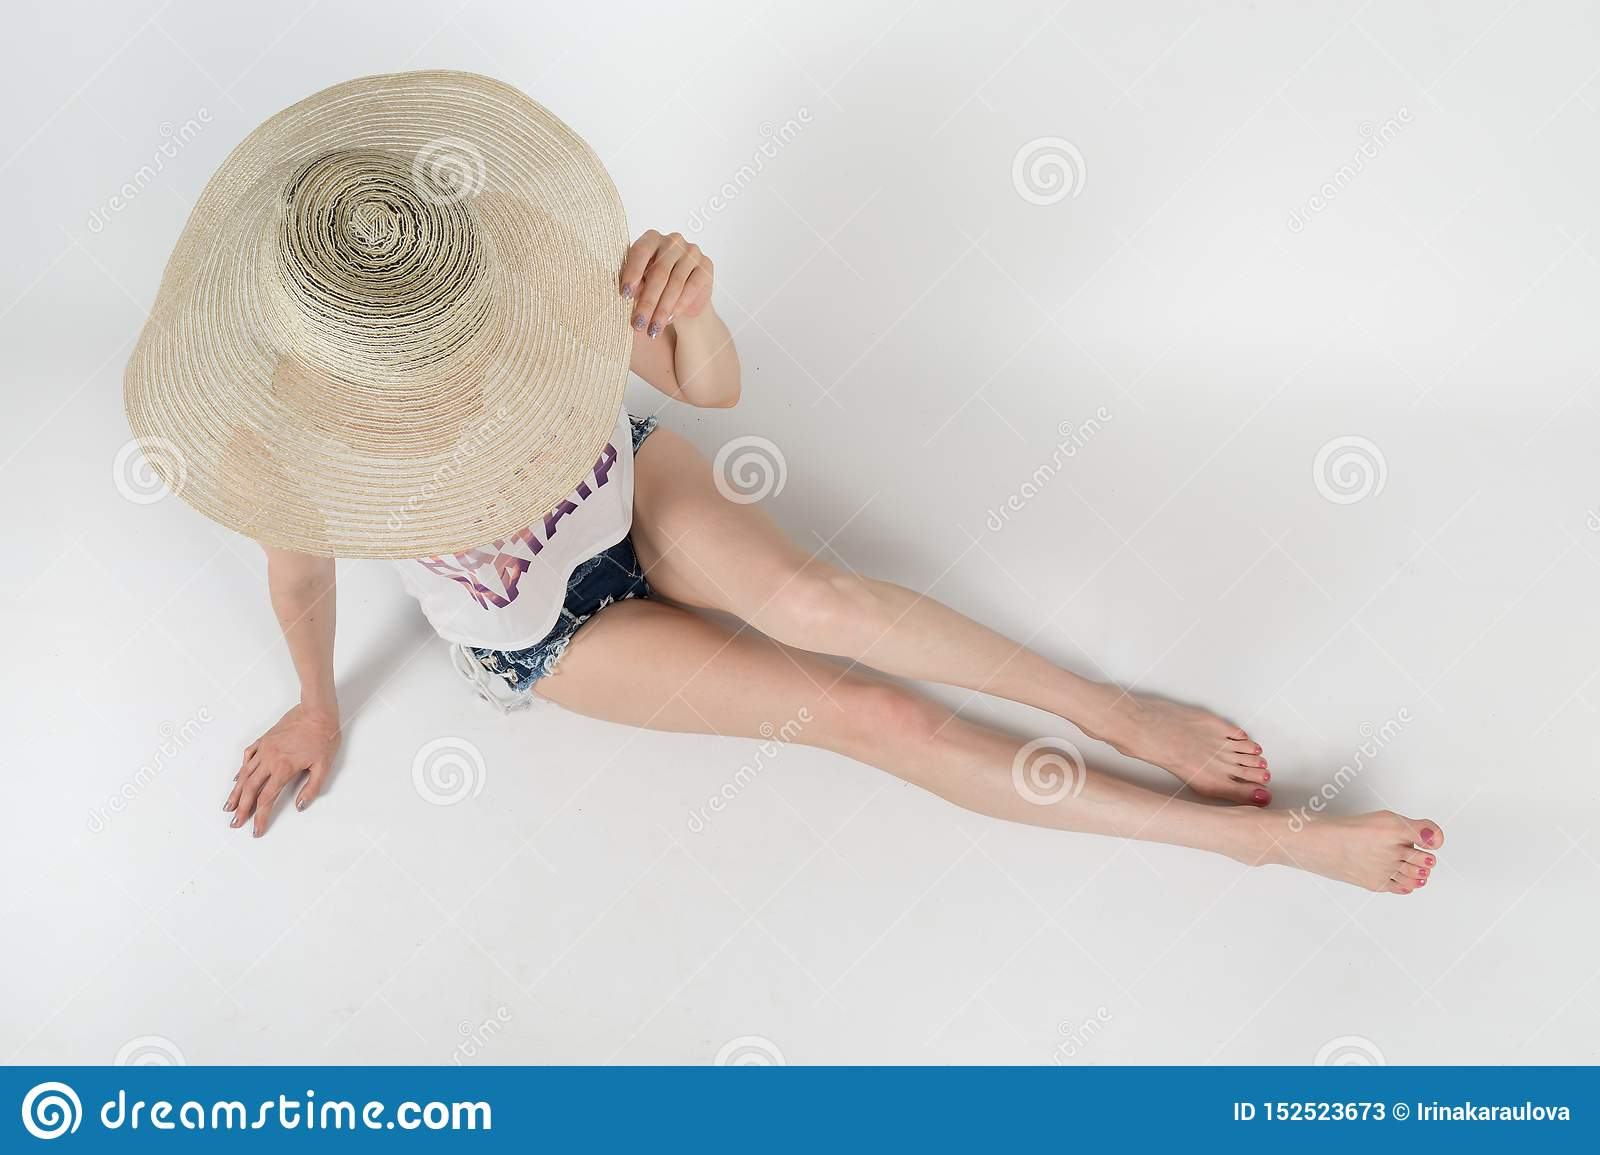 The girl in shorts and hat covering her face sitting on white background isolated